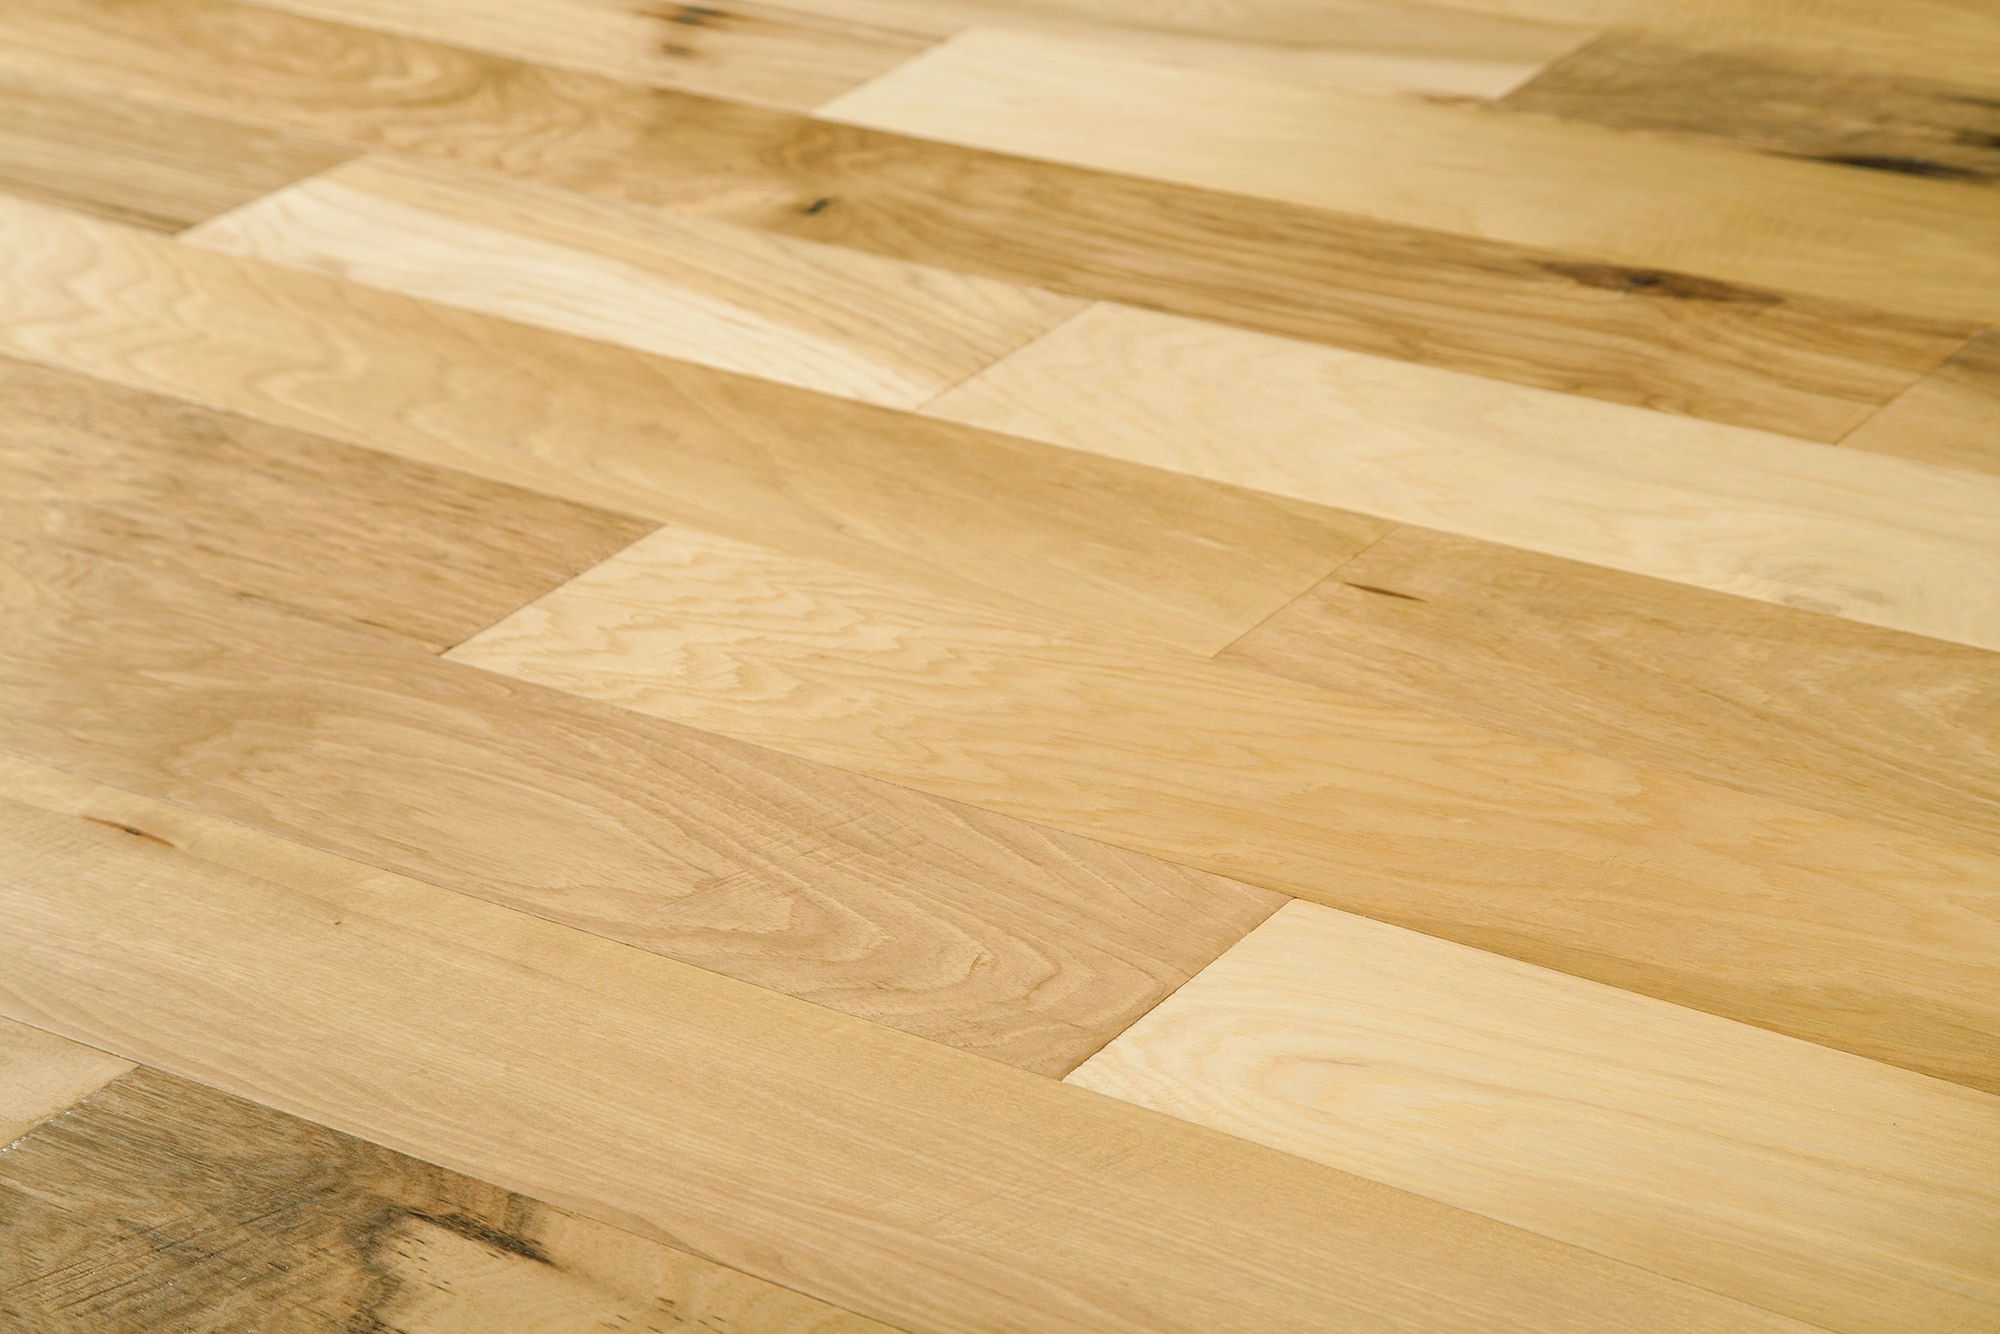 Best engineered hardwood flooring brand review top 5 for What flooring is best